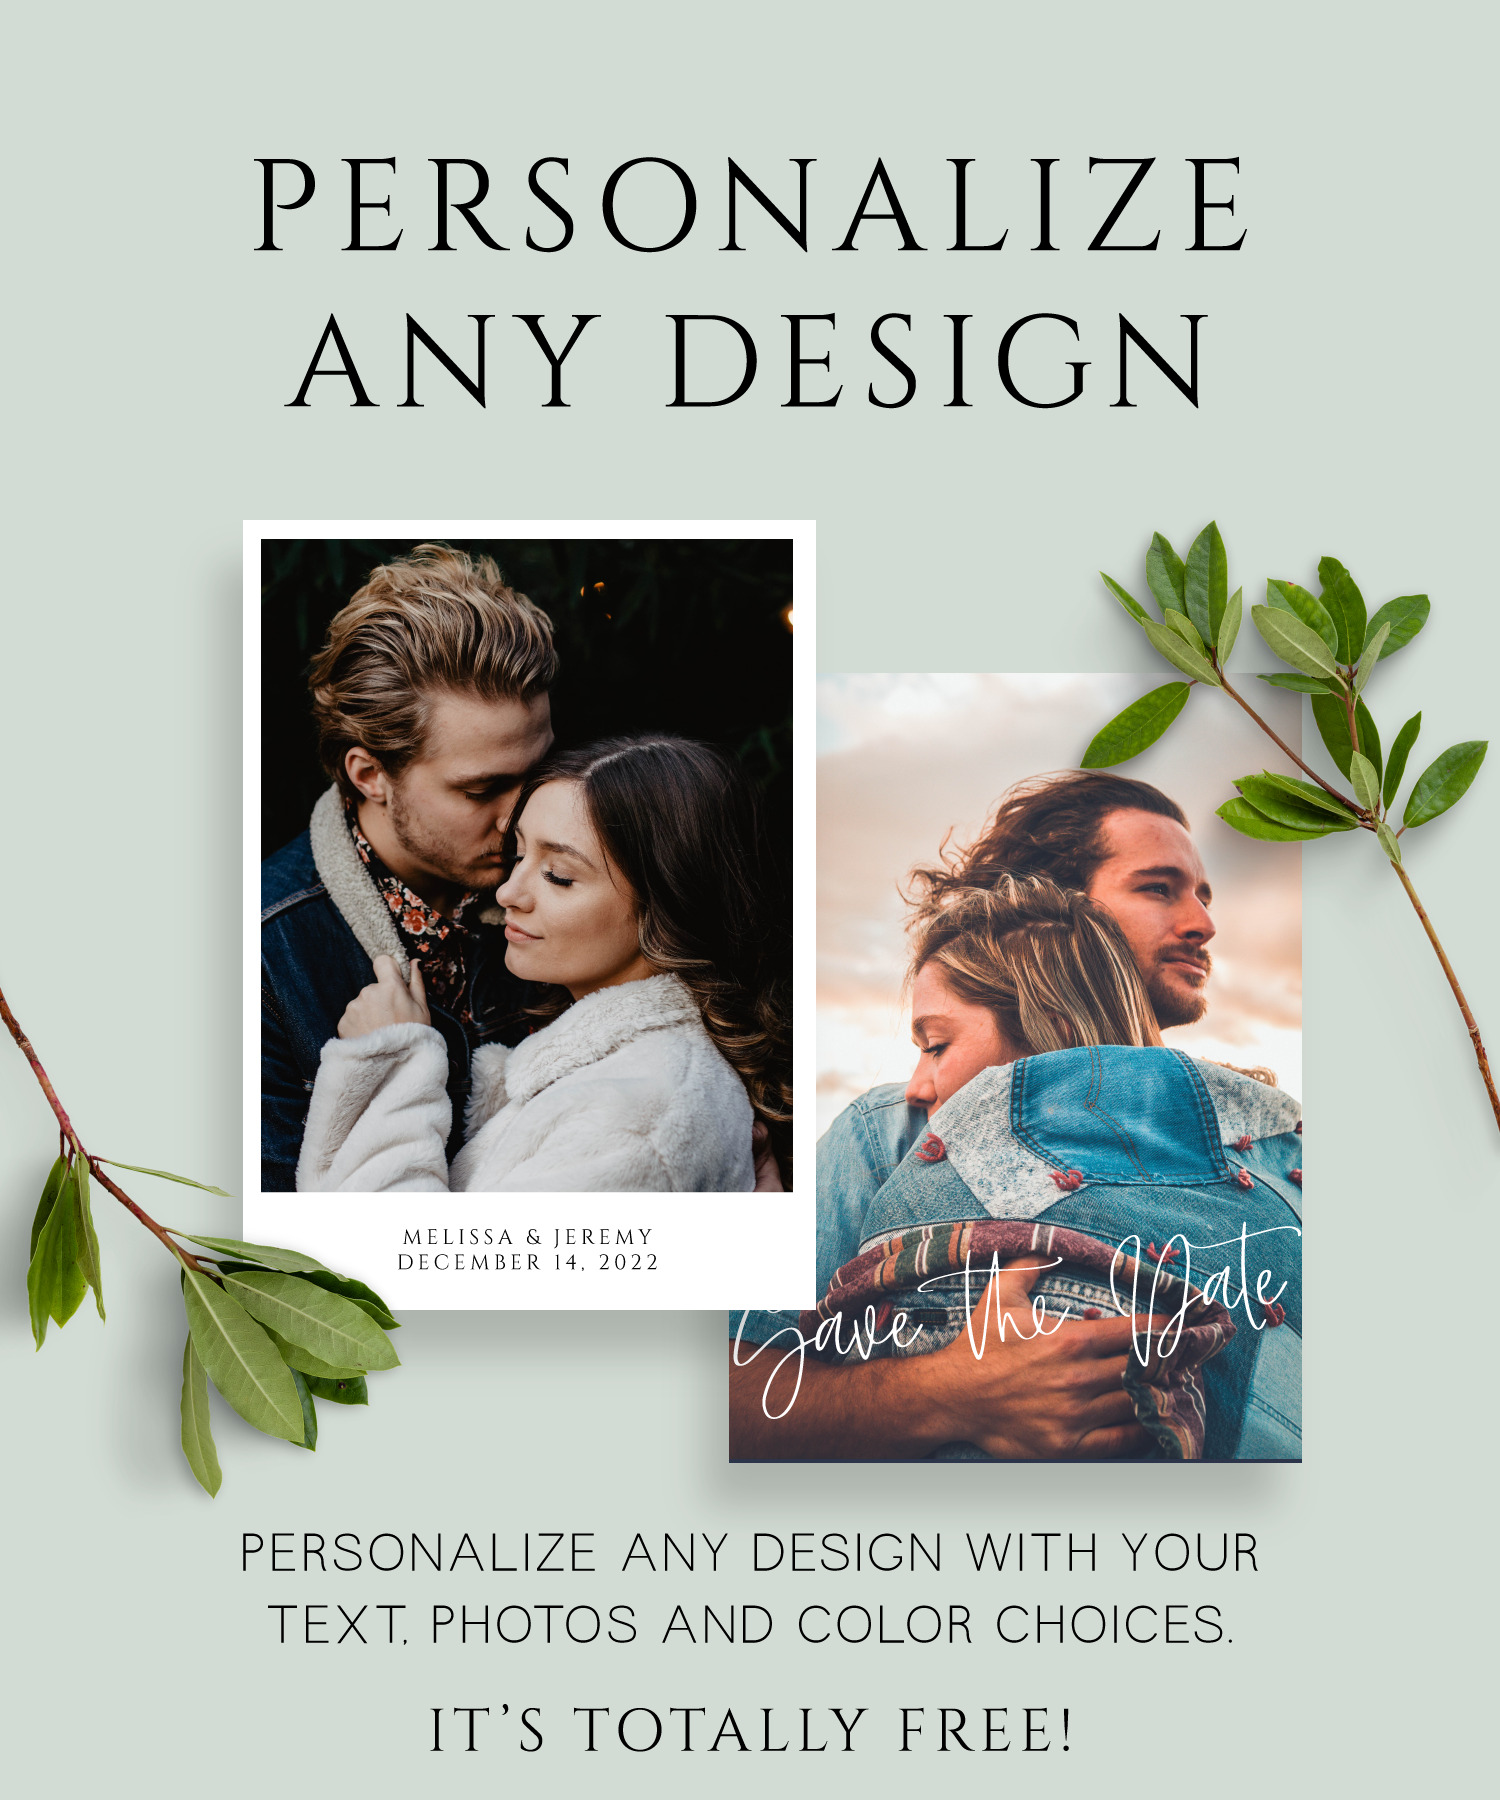 personalize-any-design